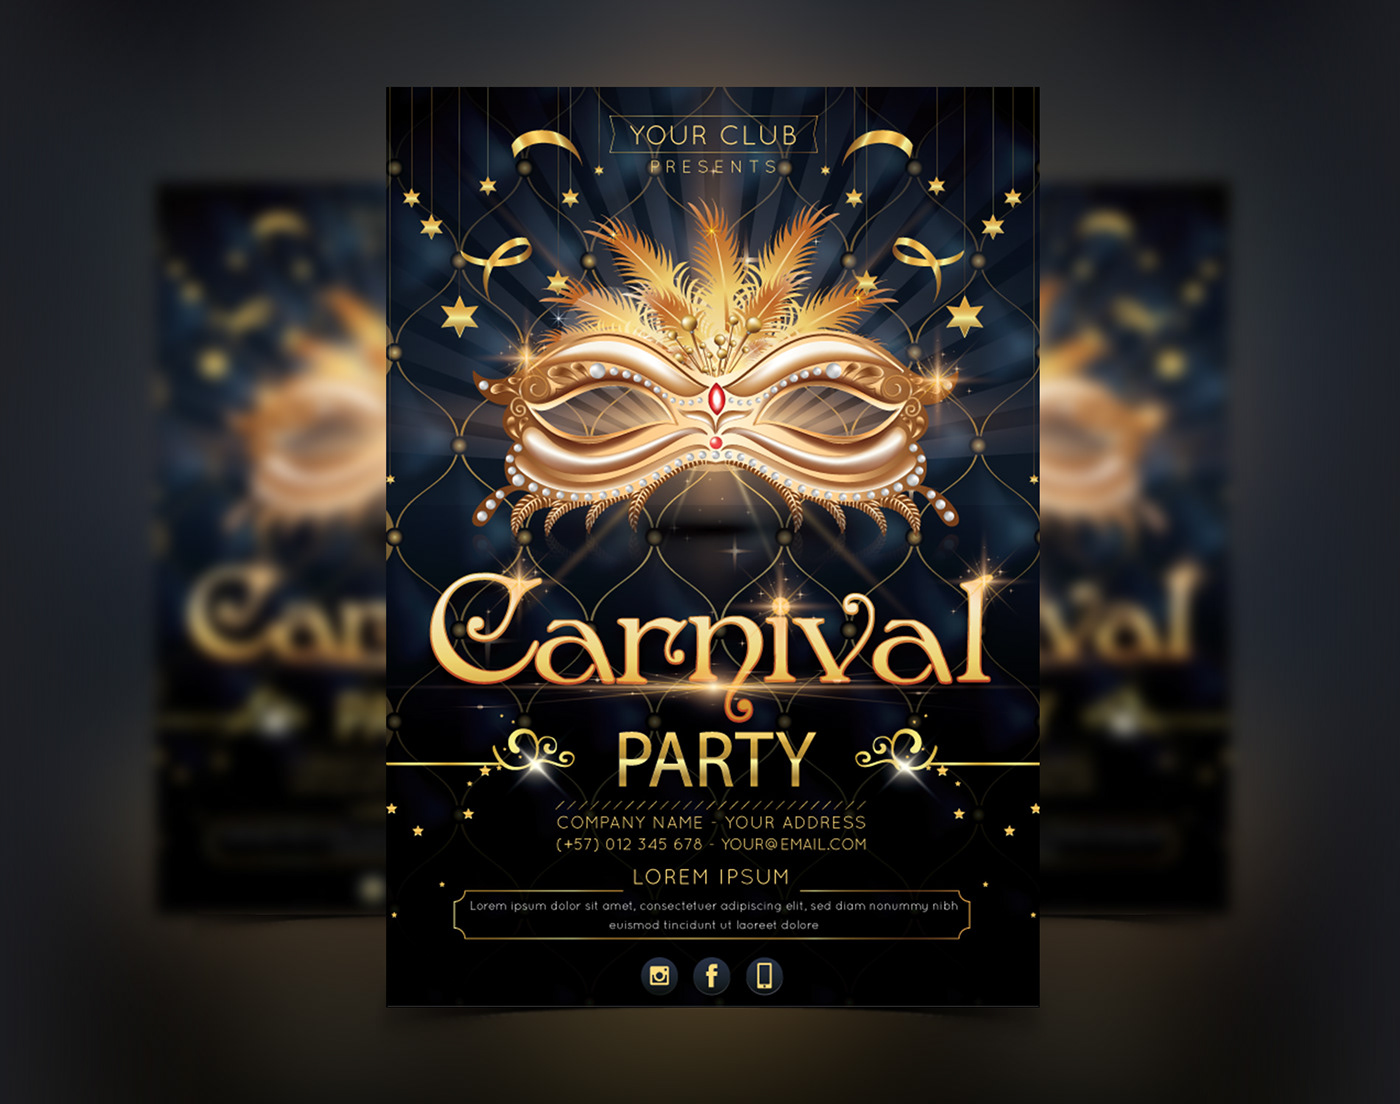 Carnival Party Invitation Template On Behance